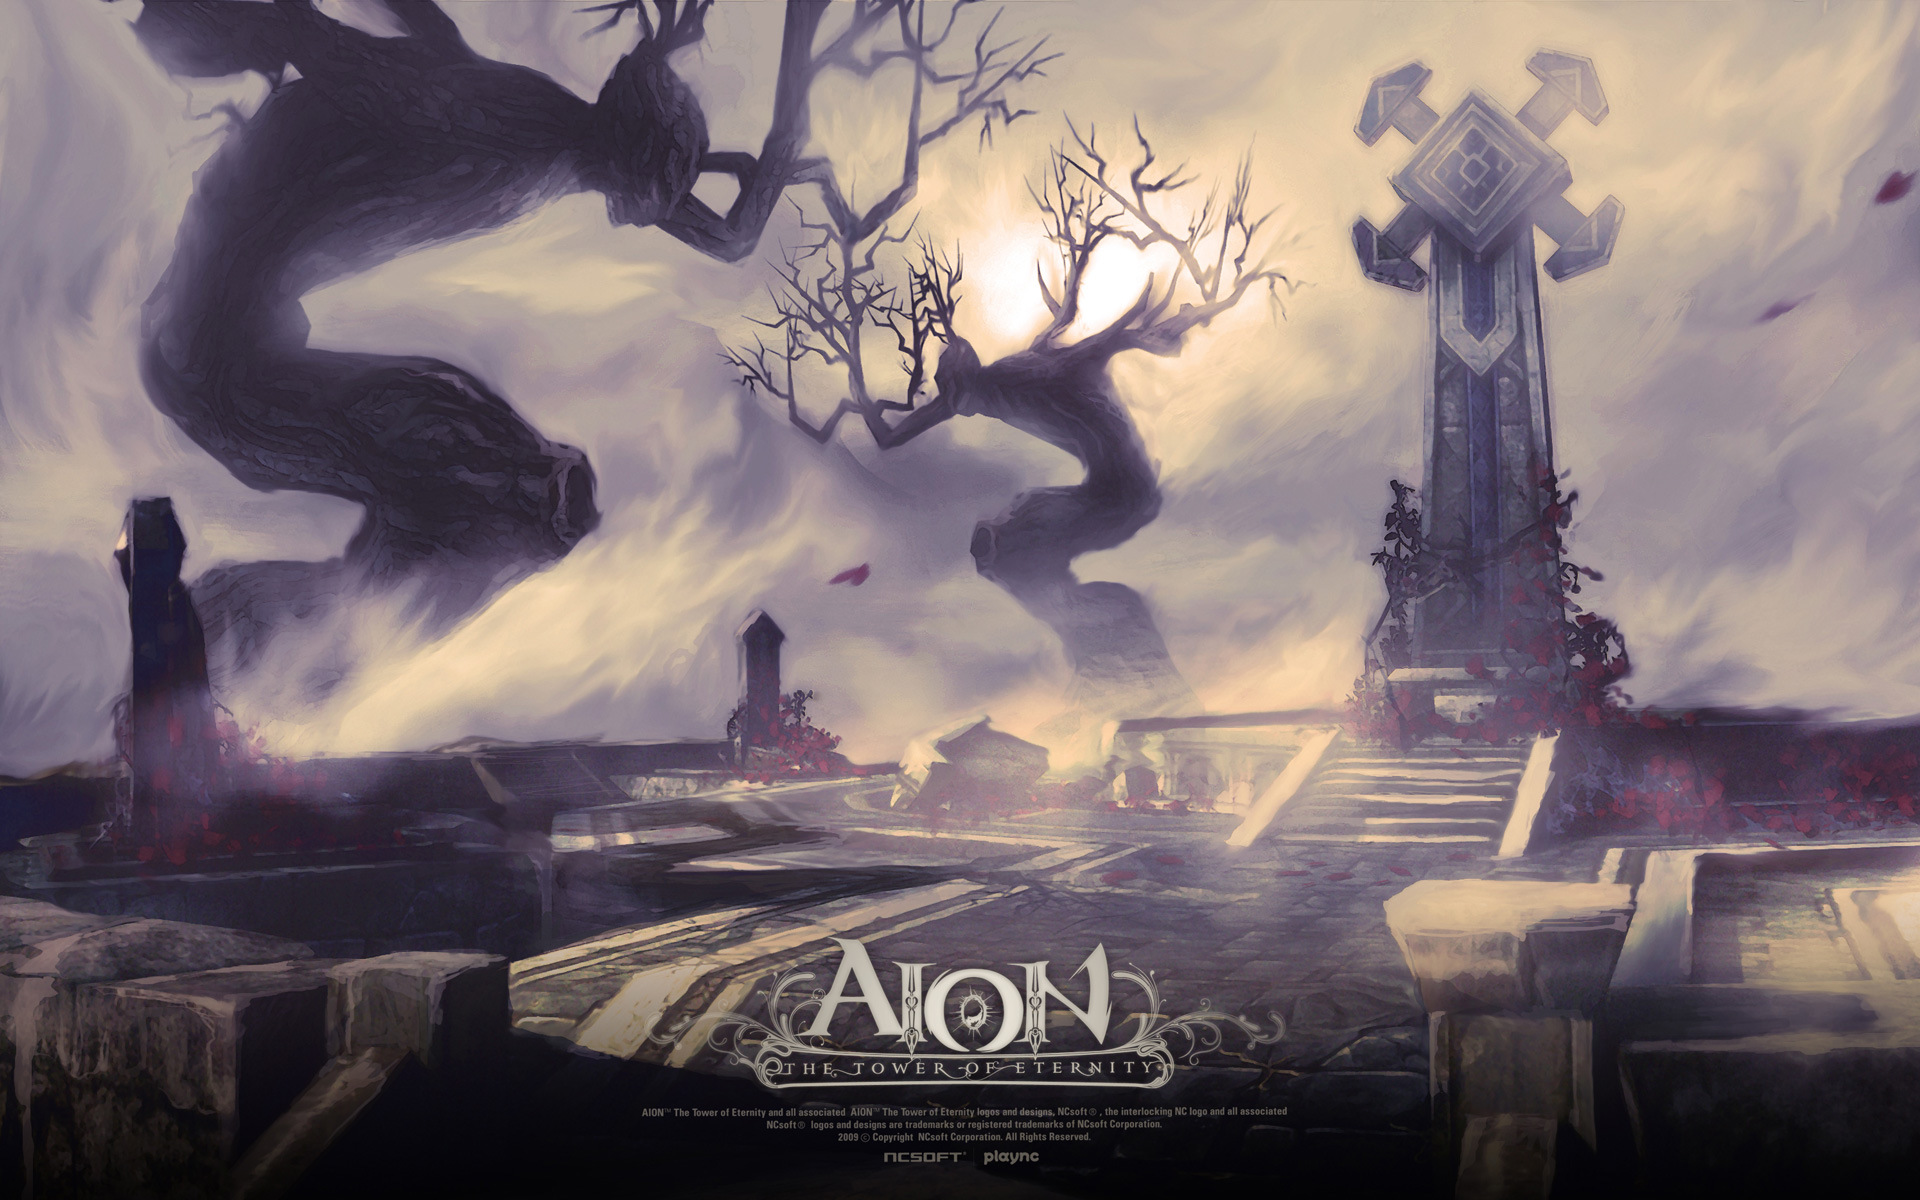 aion-the-tower-of-eternity-artwork-03-1920x1200.jpg